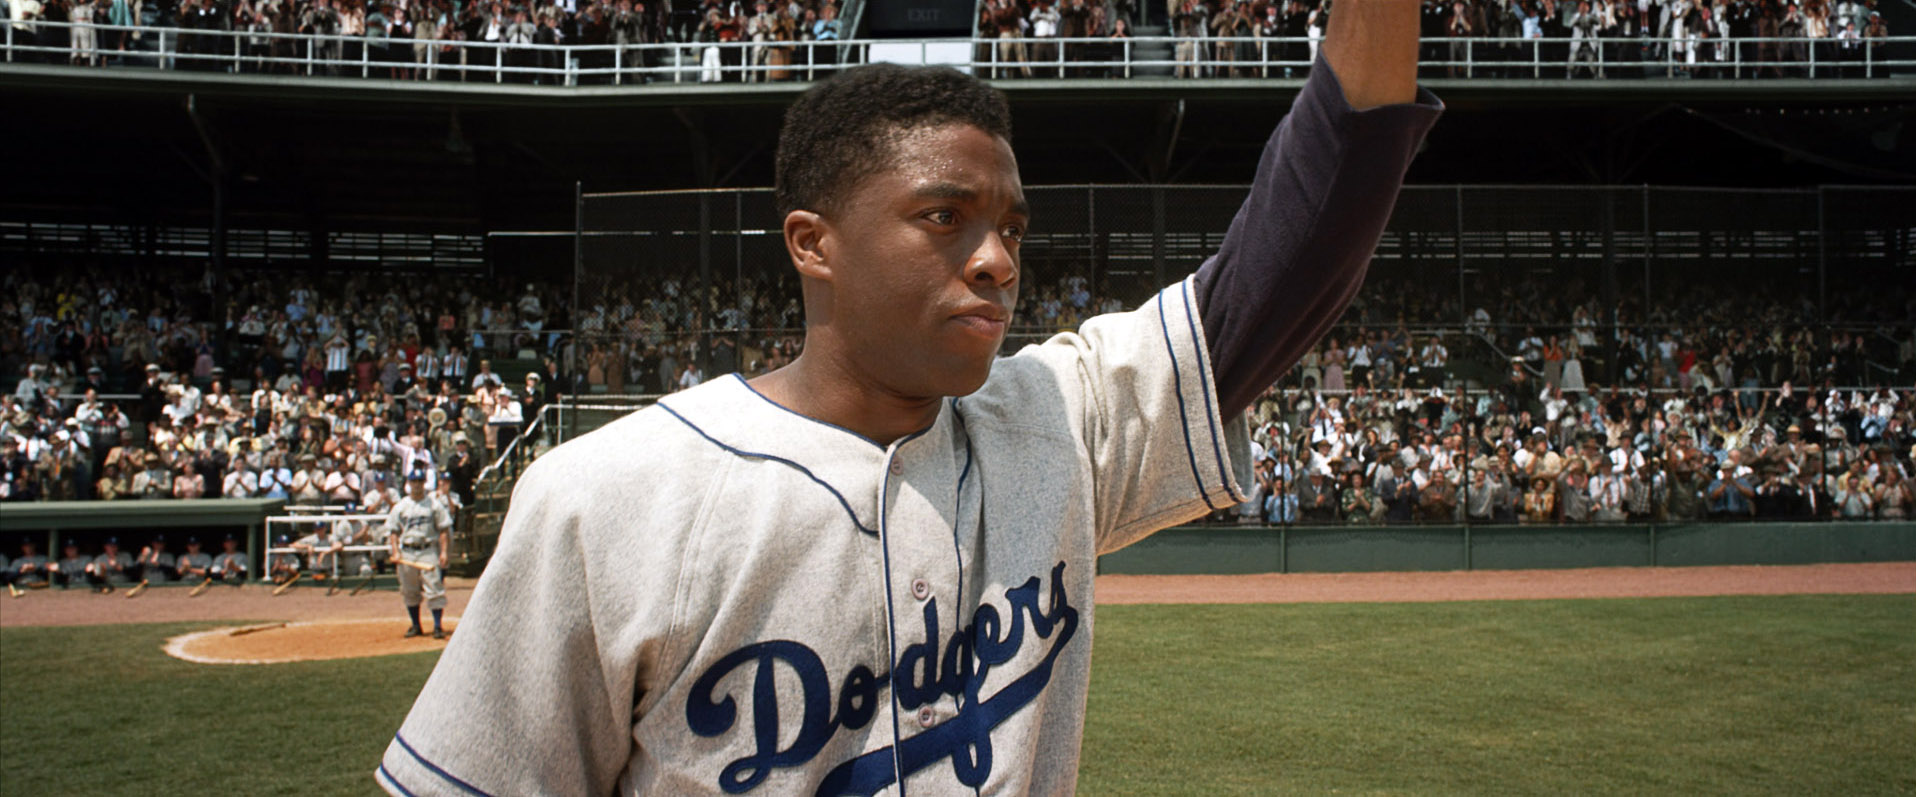 42, (aka FORTY-TWO), Chadwick Boseman as Jackie Robinson, 2013. /©Warner Bros. Pictures/courtesy Everett Collection